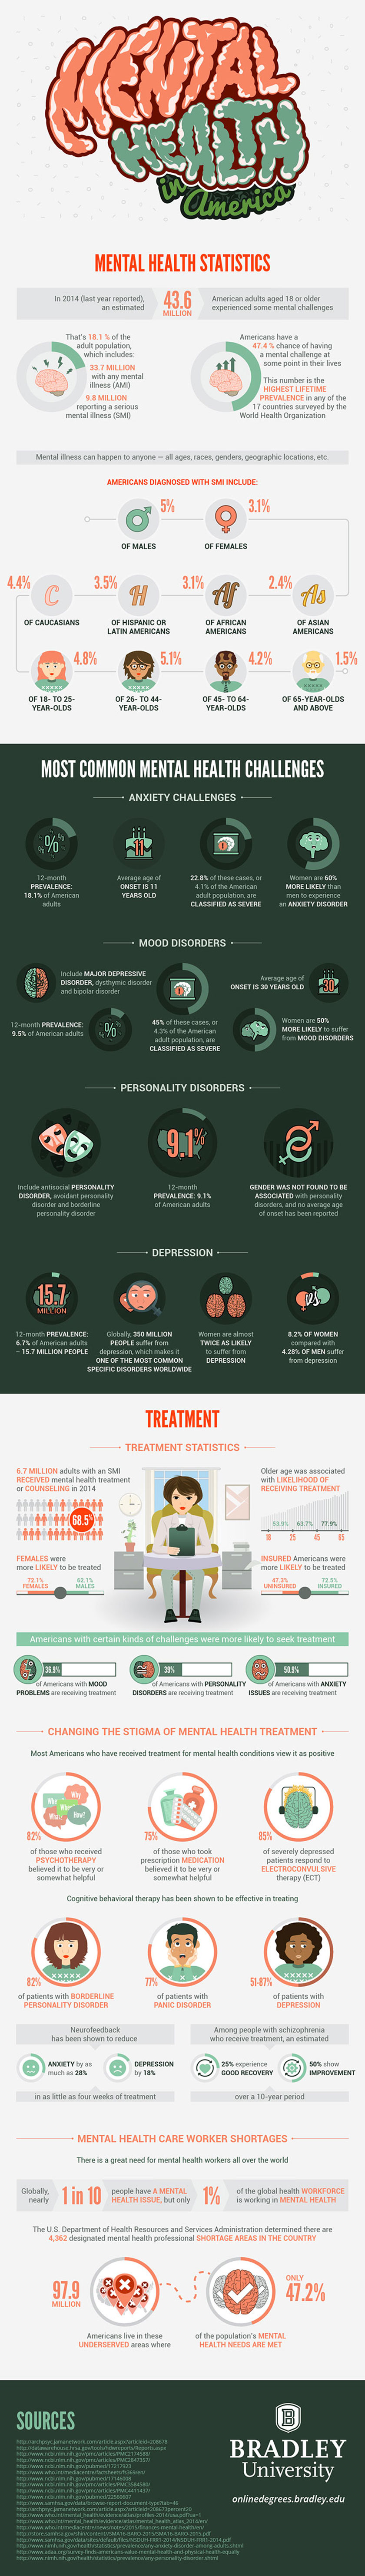 Mental Health in America,Infographic